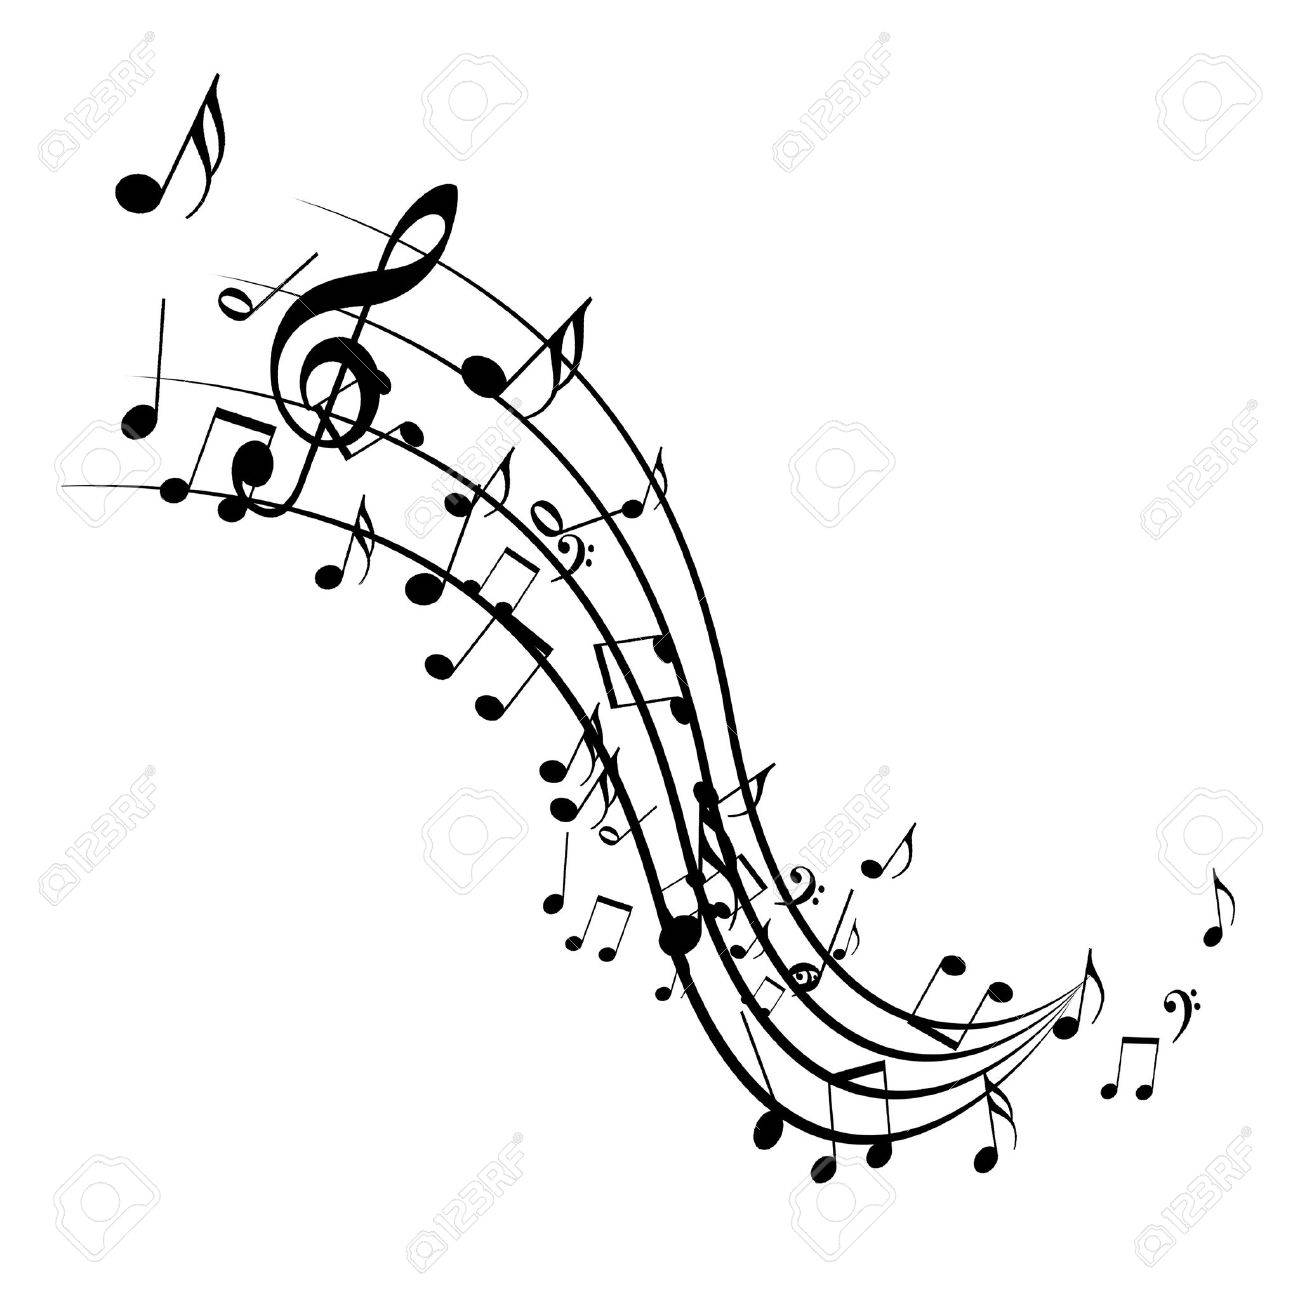 Black Music Notes Isolated On A Solid White Background